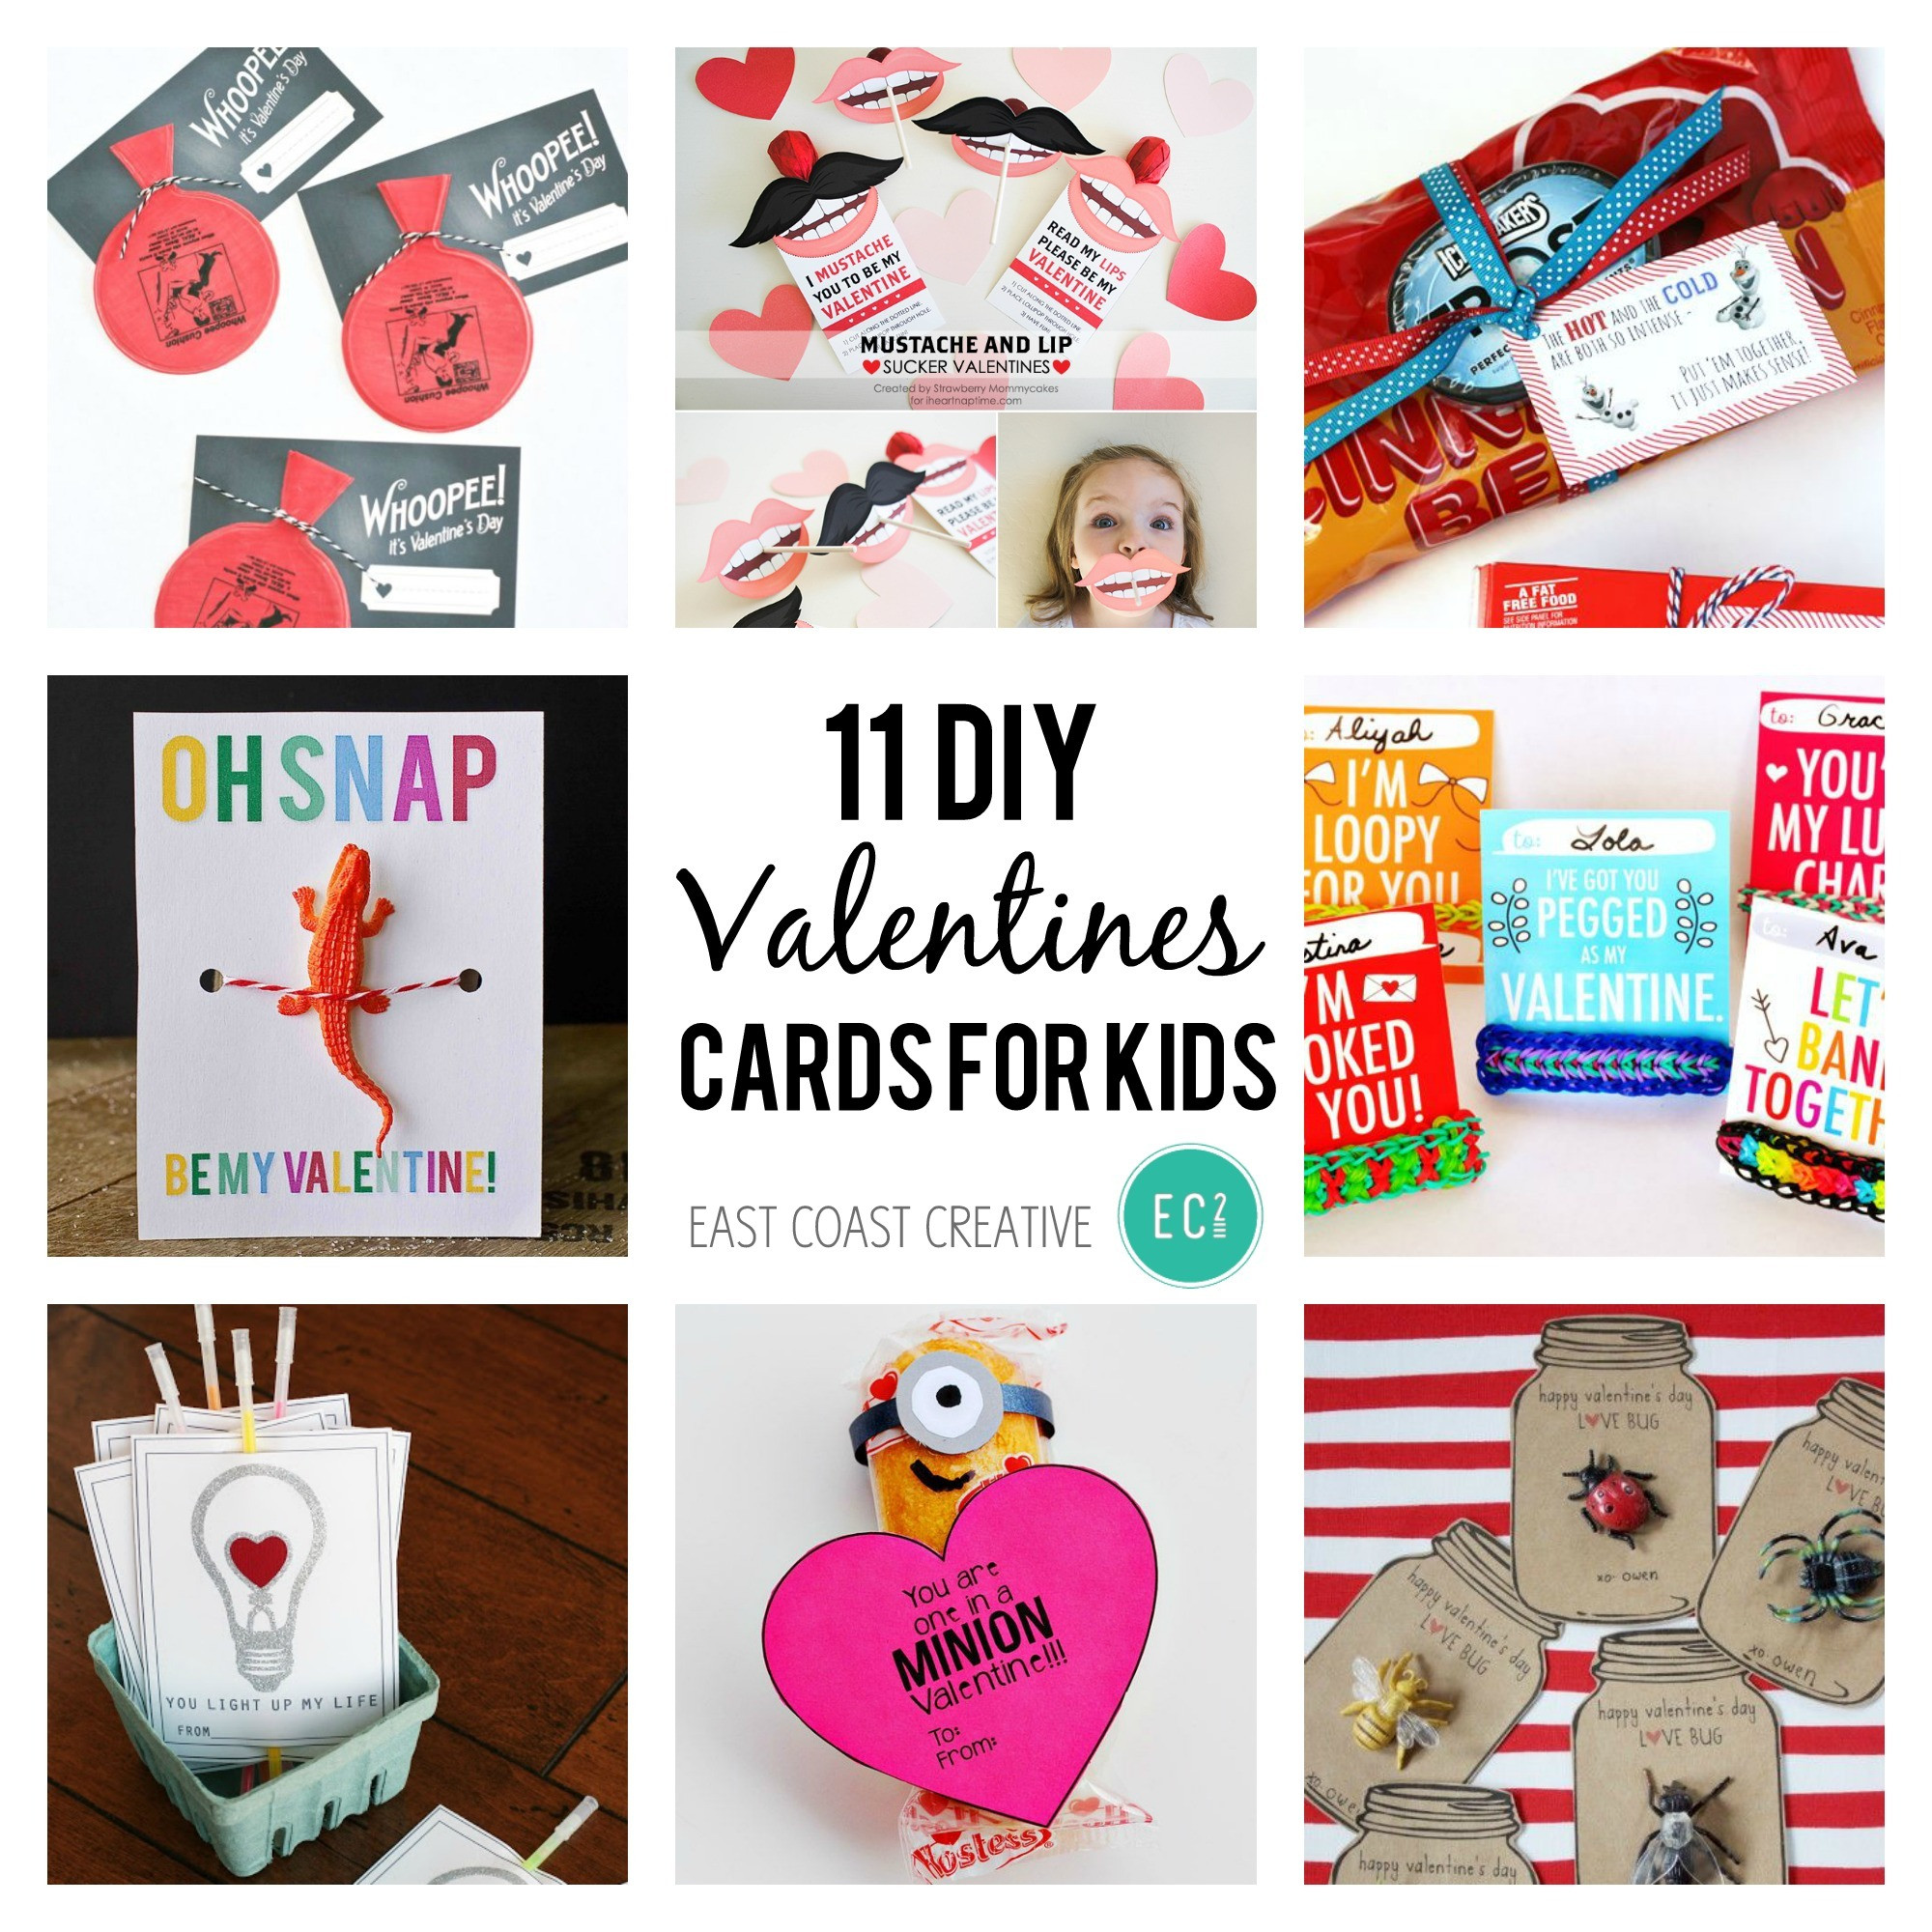 Best ideas about DIY Kids Valentine Cards . Save or Pin 11 DIY Valentine's Day Cards for Kids Now.